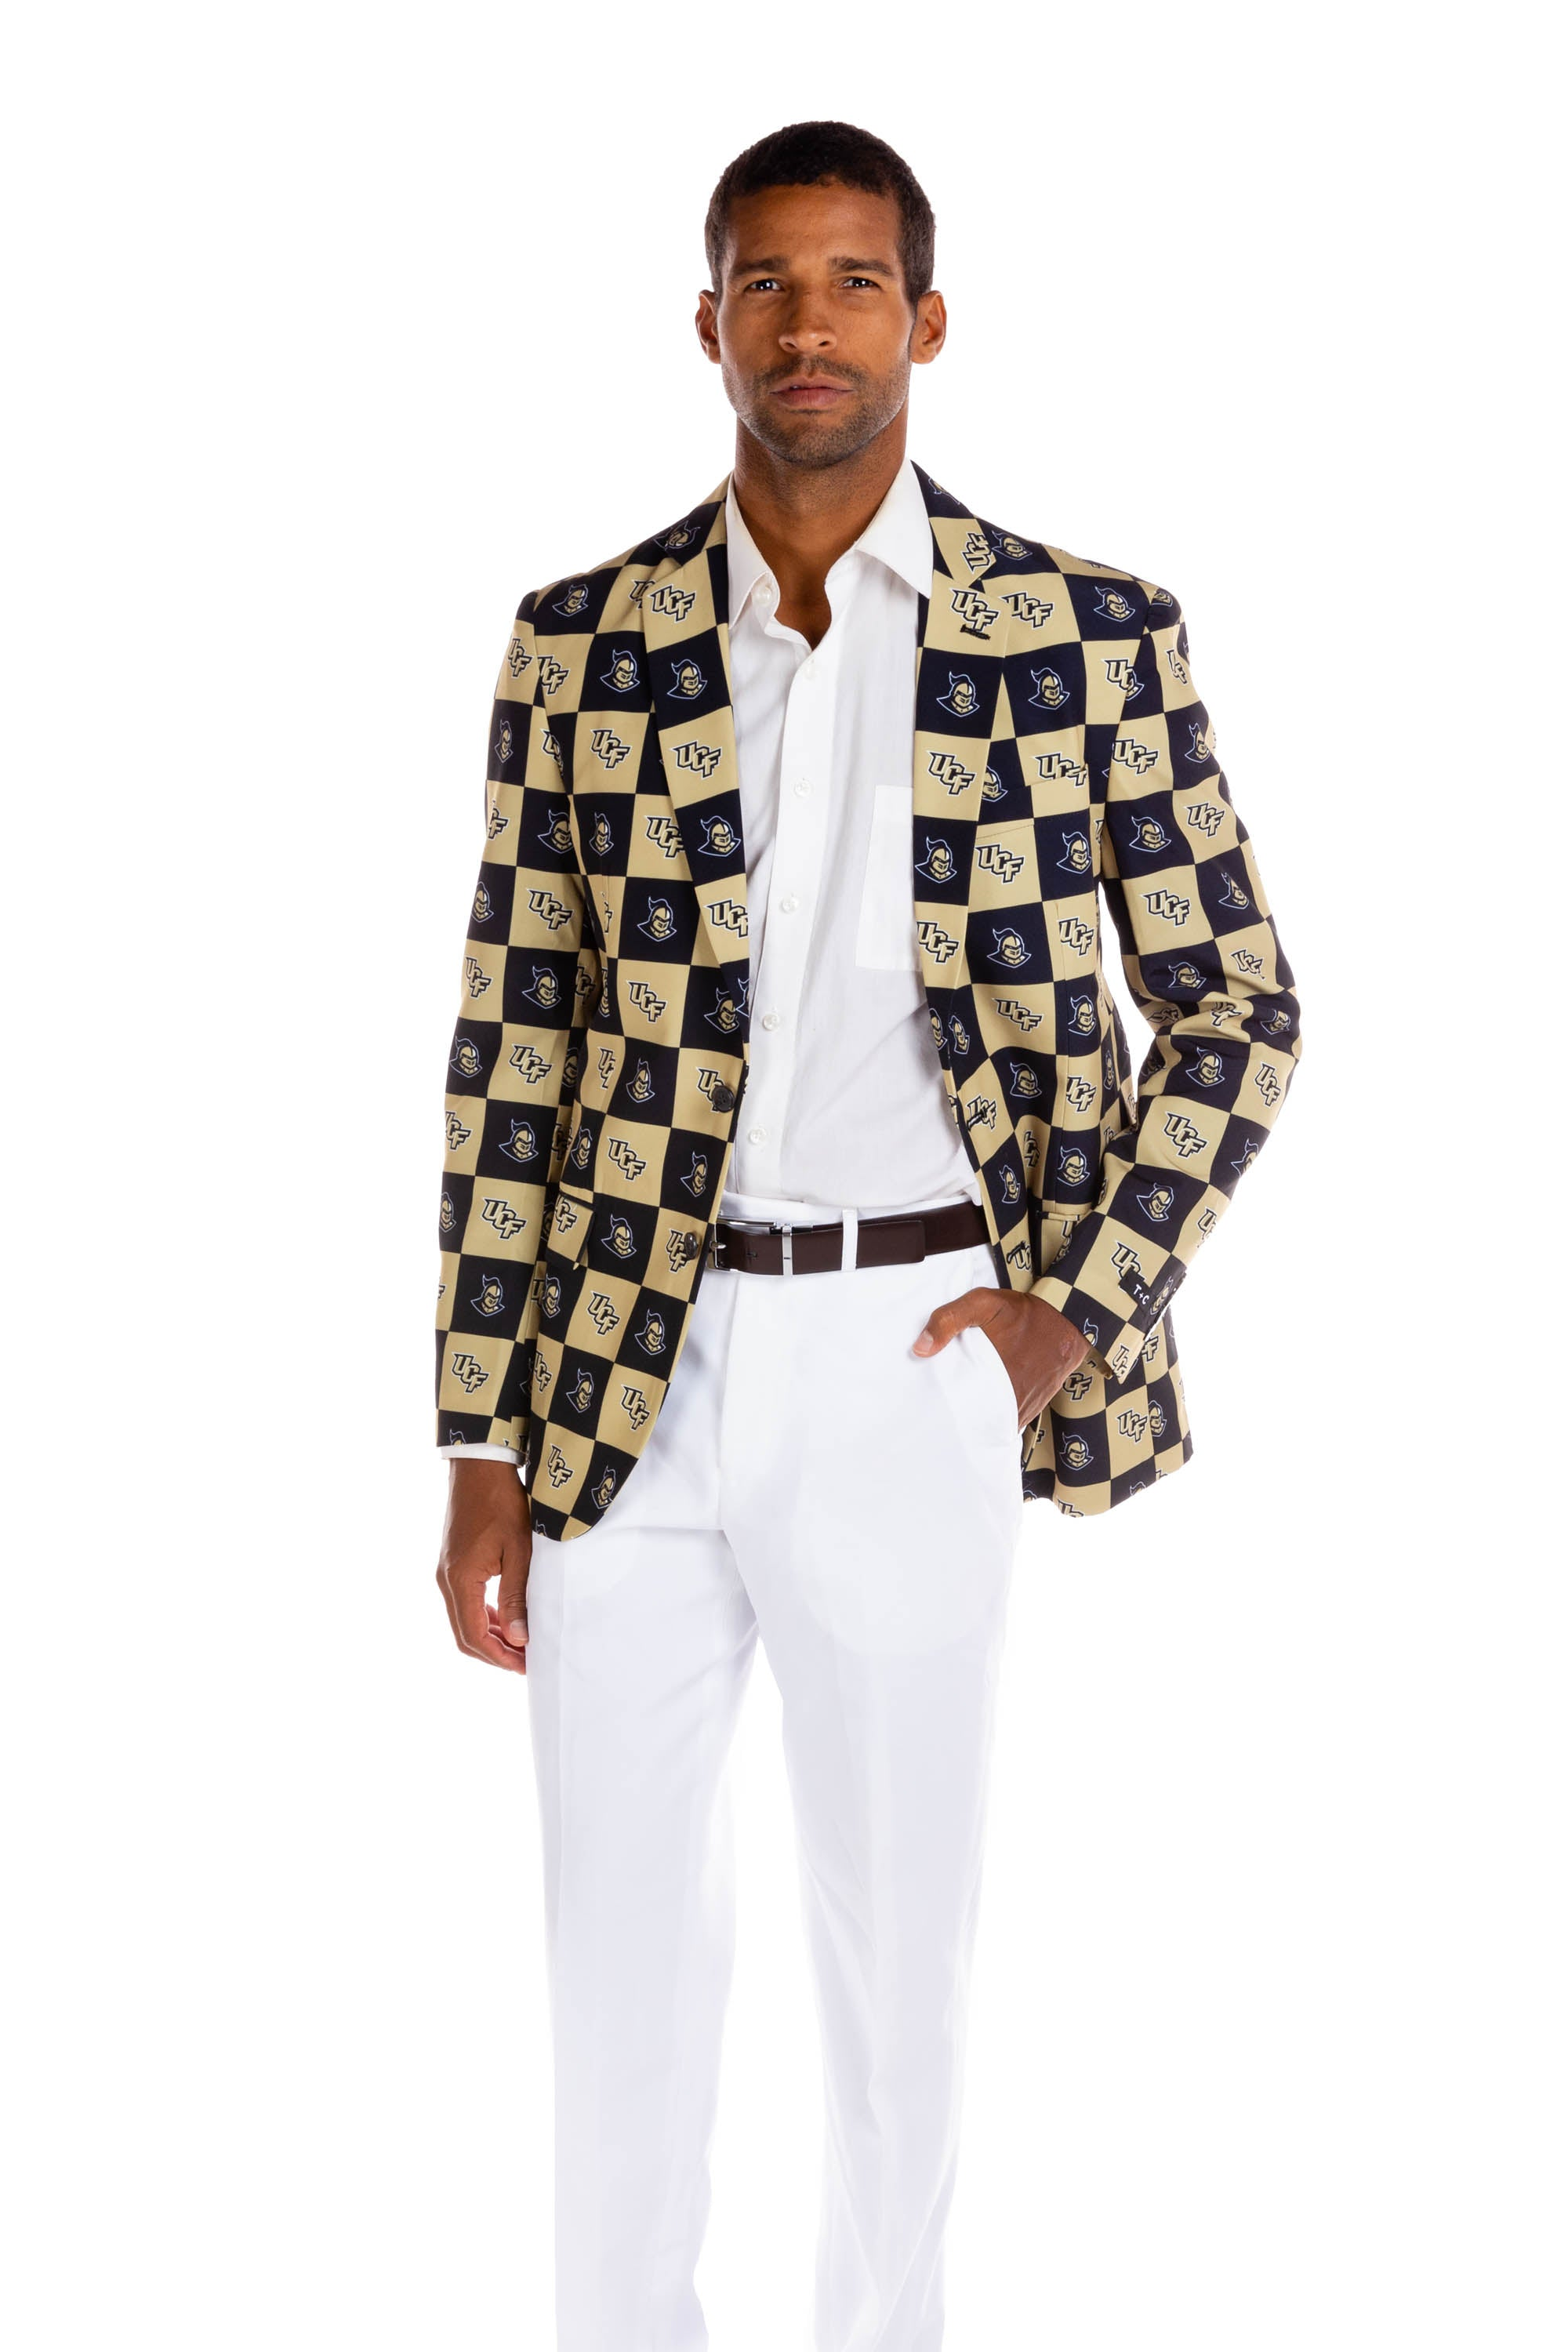 University of Central Florida Tailgating Blazer